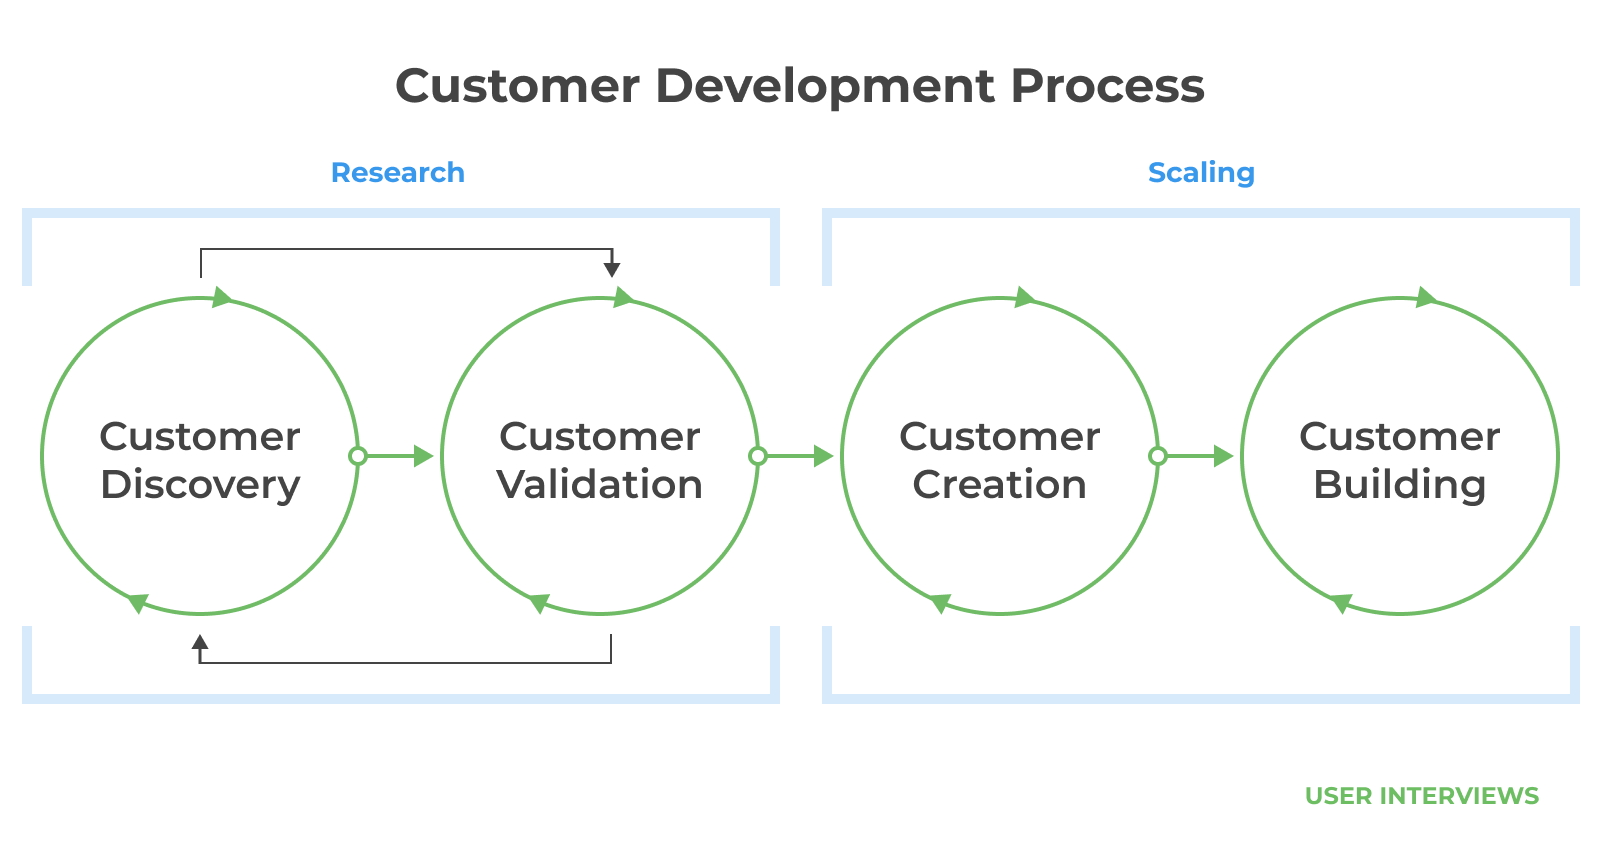 Research: Customer Discovery > Customer Validation; Scaling: Customer Creation > Customer Building (Most startups spend too little time in the customer discovery and customer validation stages of the customer development process.)